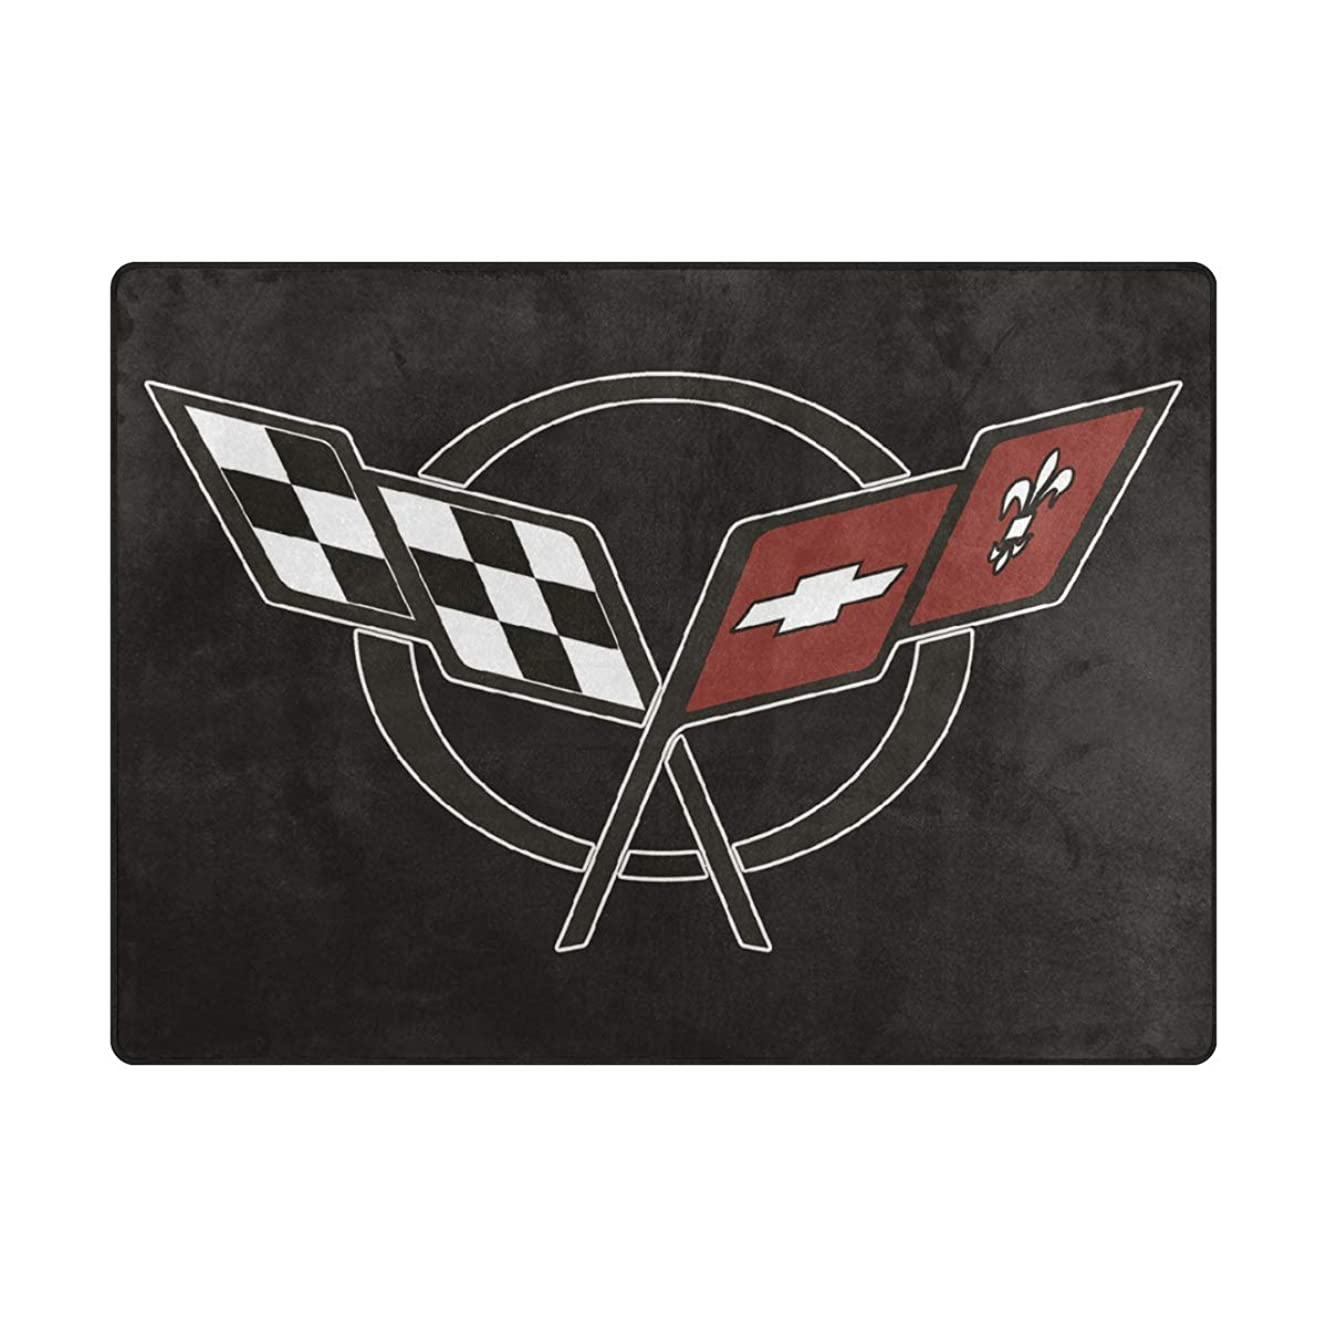 Fallake Corvette-Logo Distressed Area Rug Rugs for Living Room Bedroom